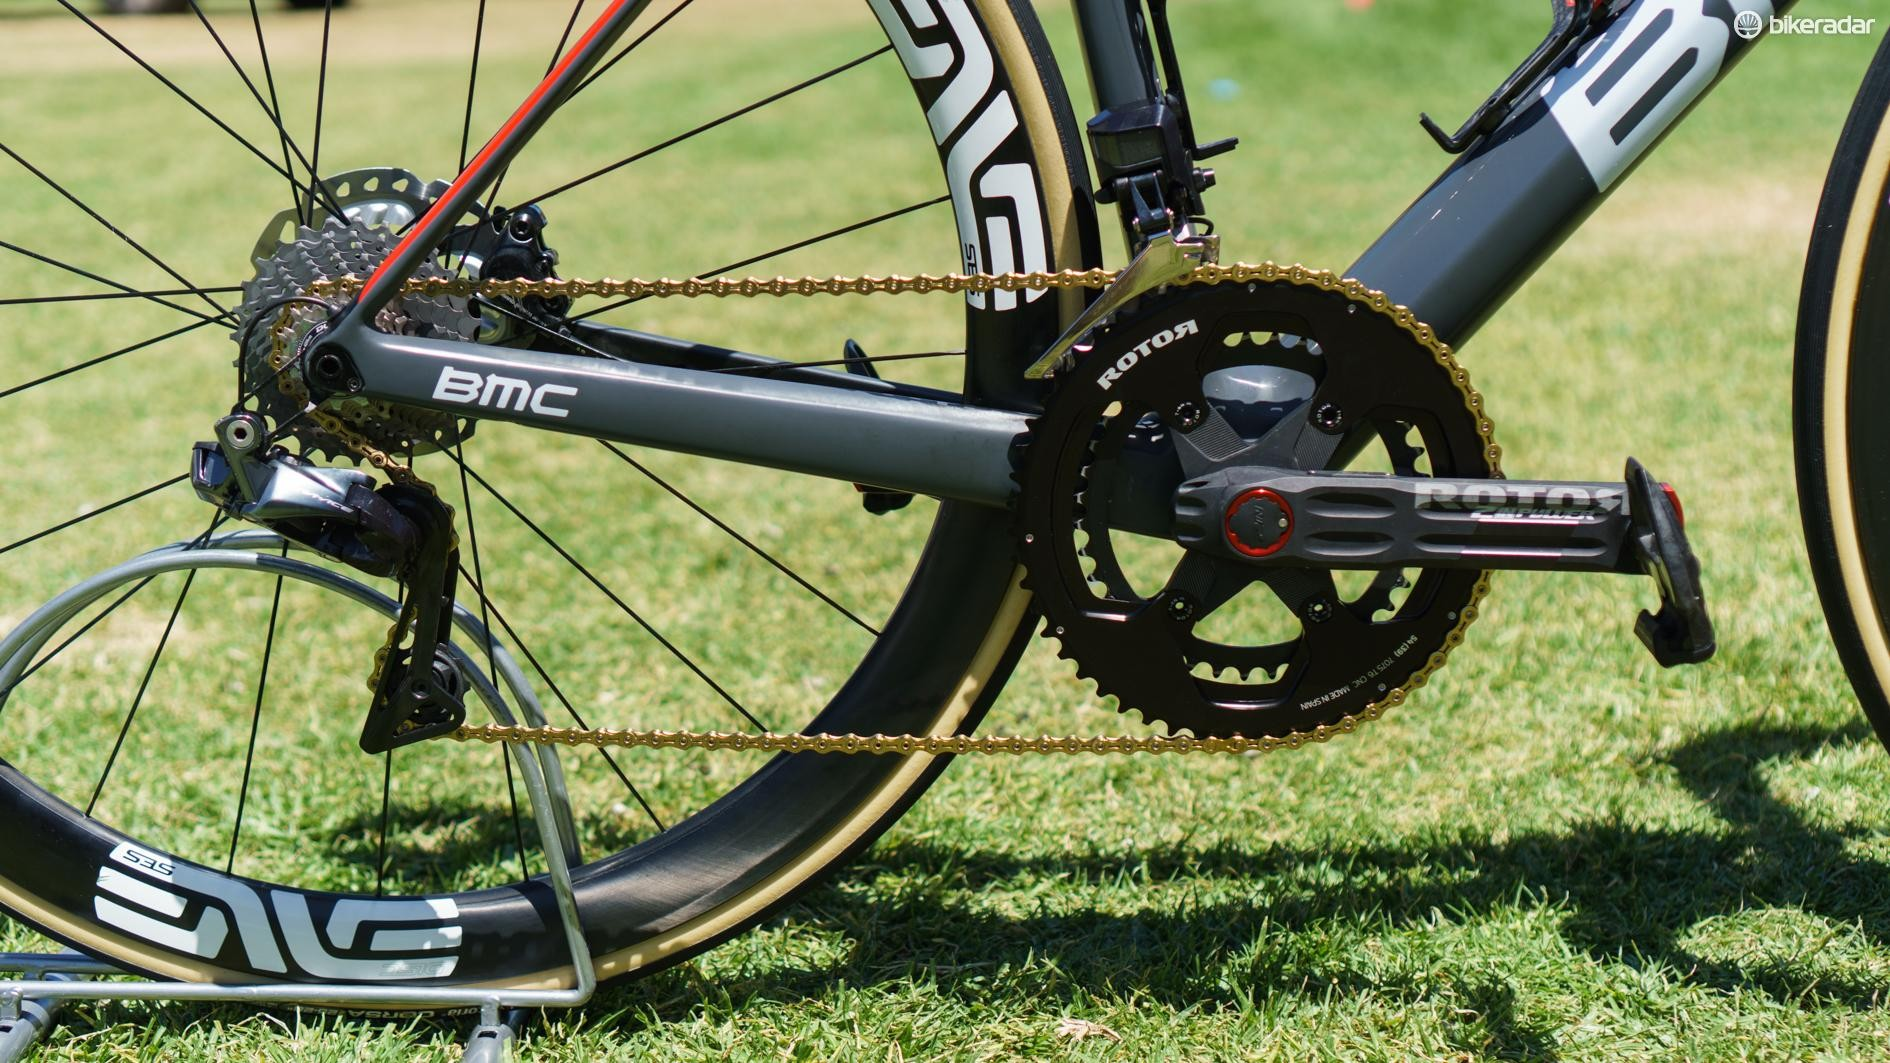 Shimano Dura-Ace R9150 shifters and derailleurs are used in conjunction with the Rotor and KMC components